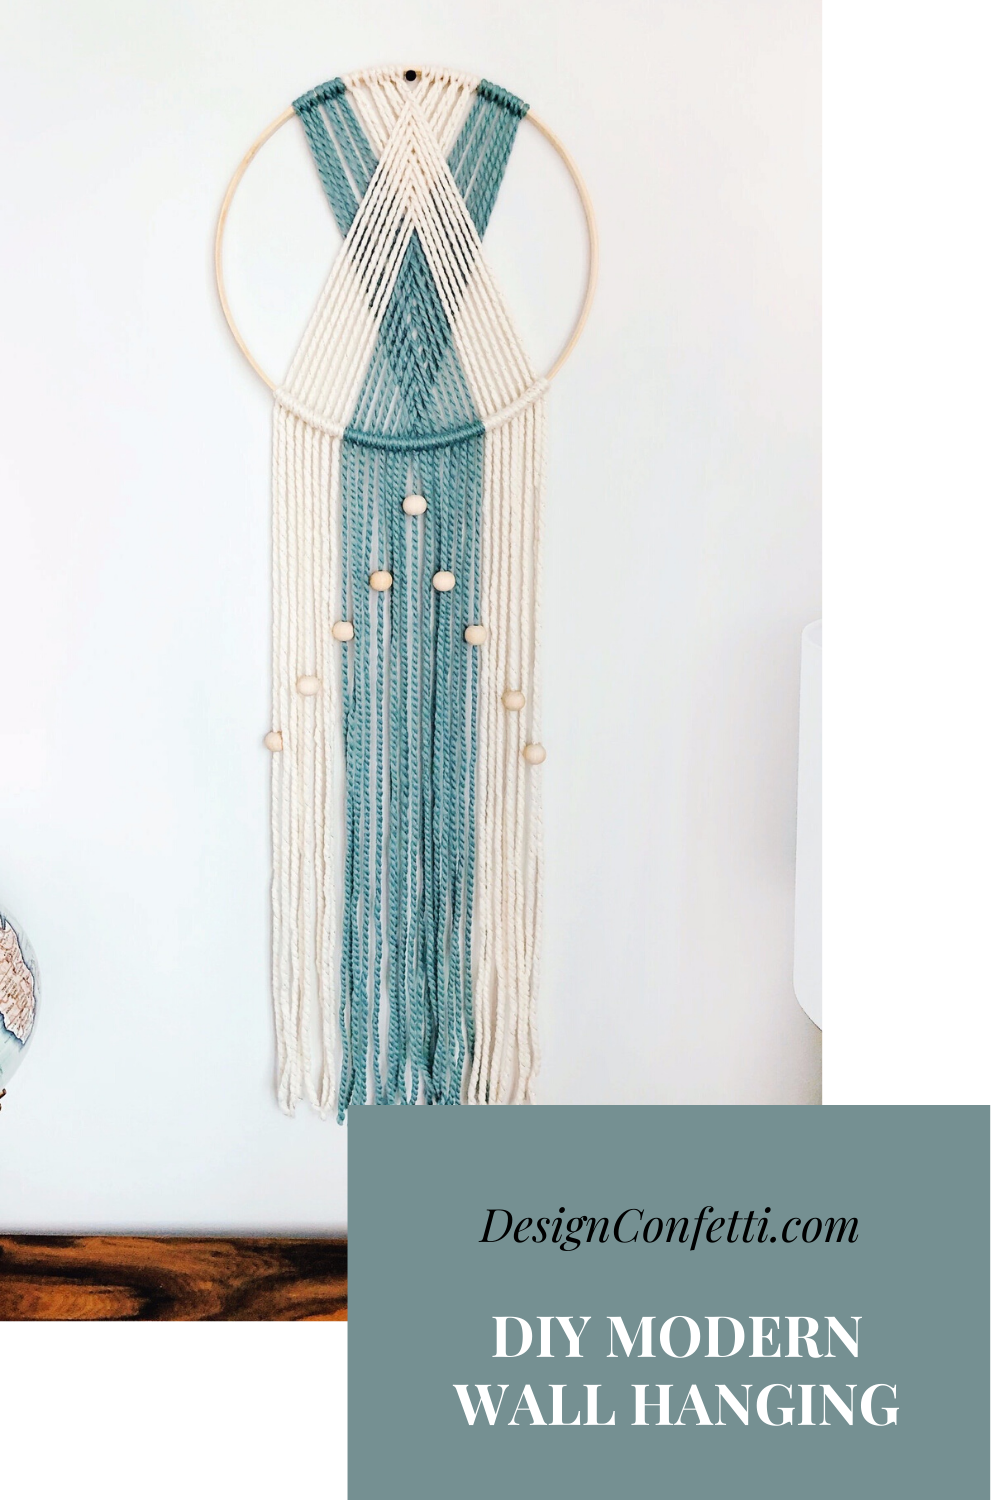 A DIY modern reversible, yarn wall hanging that you can complete in one hour.  #wallhanging #diy #diyhomedecor #modernmacrame #yarnwallhanging #affordabledecor